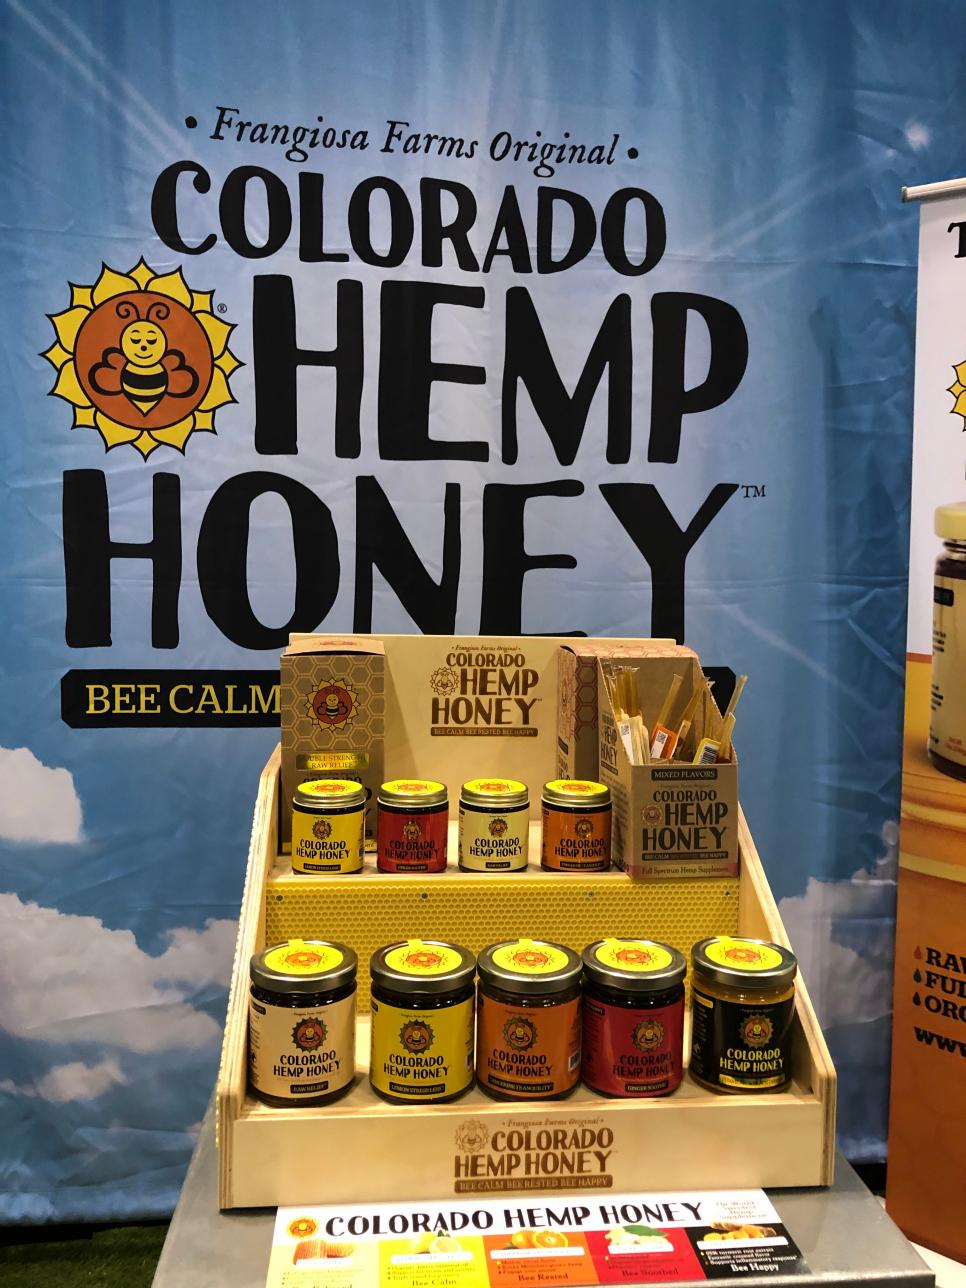 Colorado Hemp Honey.JPG